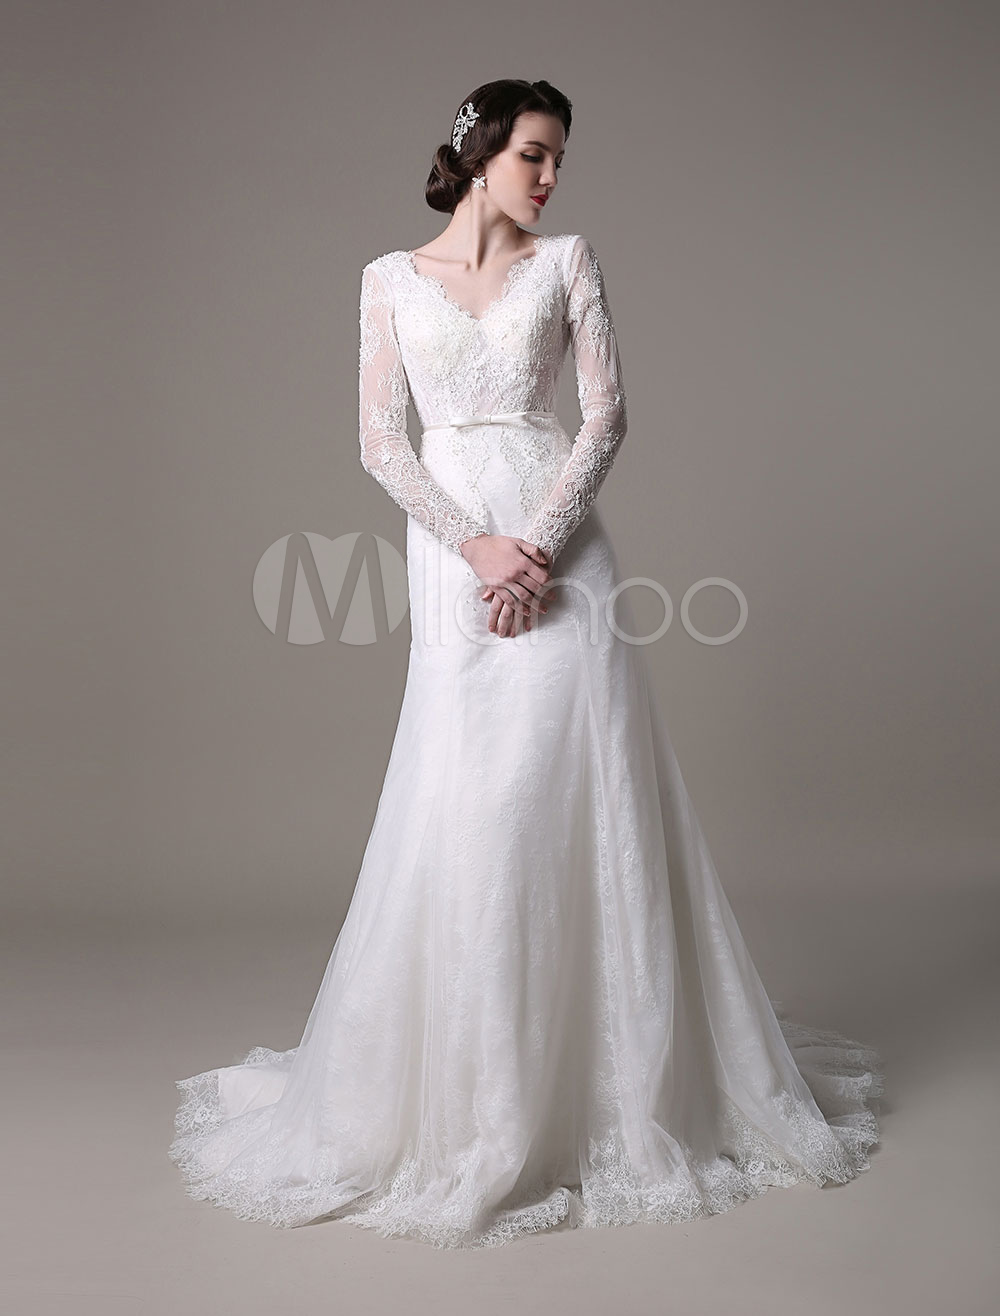 Buy 2018 Vintage Lace Wedding Dress A-line With Long Sleeves Pearls Applique And Chapel Train for $320.44 in Milanoo store